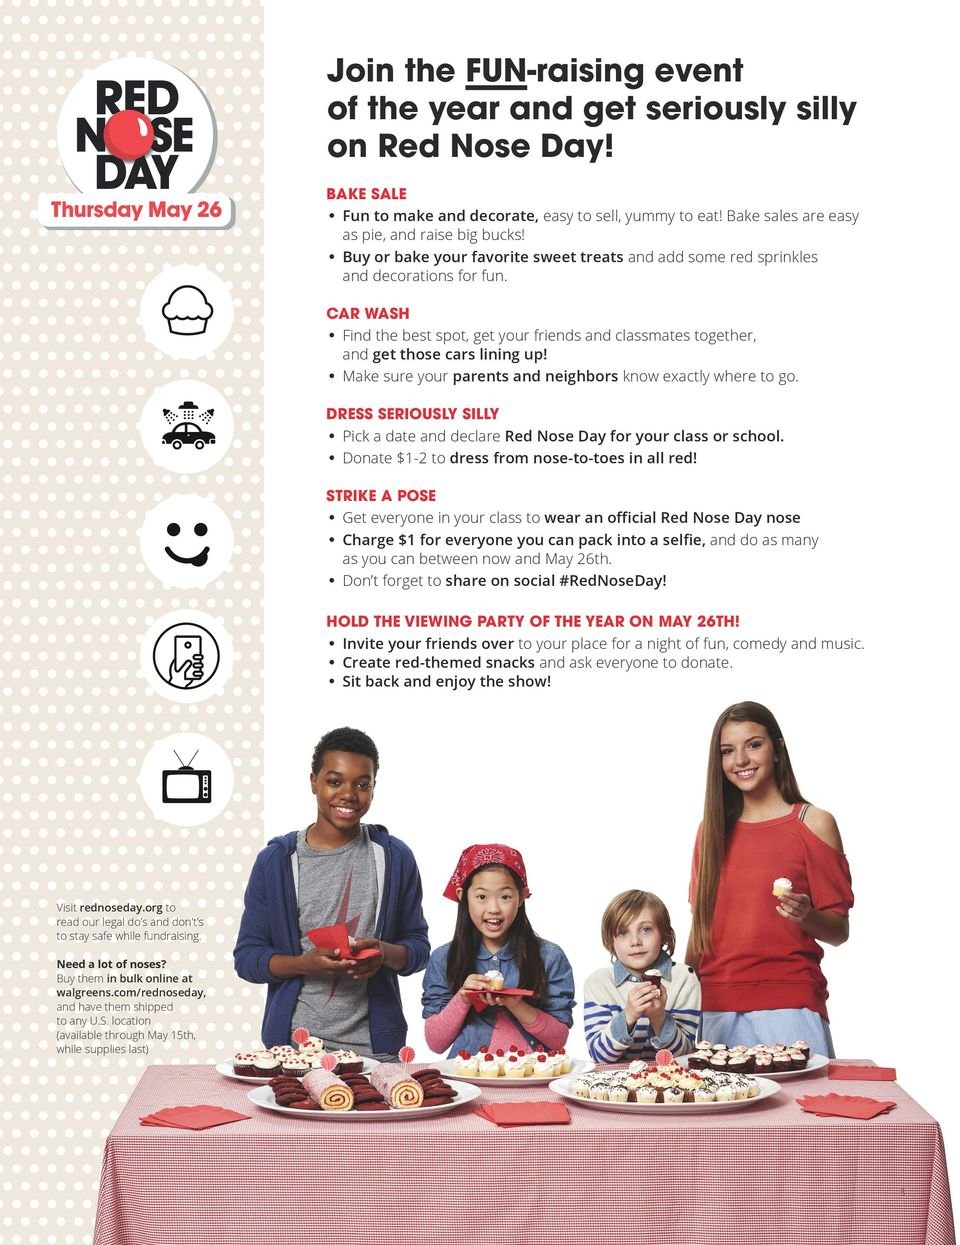 Make sure your parents and neighbors know exactly where to go. DRESS SERIOUSLY SILLY Pick a date and declare Red Nose Day for your class or school. Donate $1-2 to dress from nose-to-toes in all red!